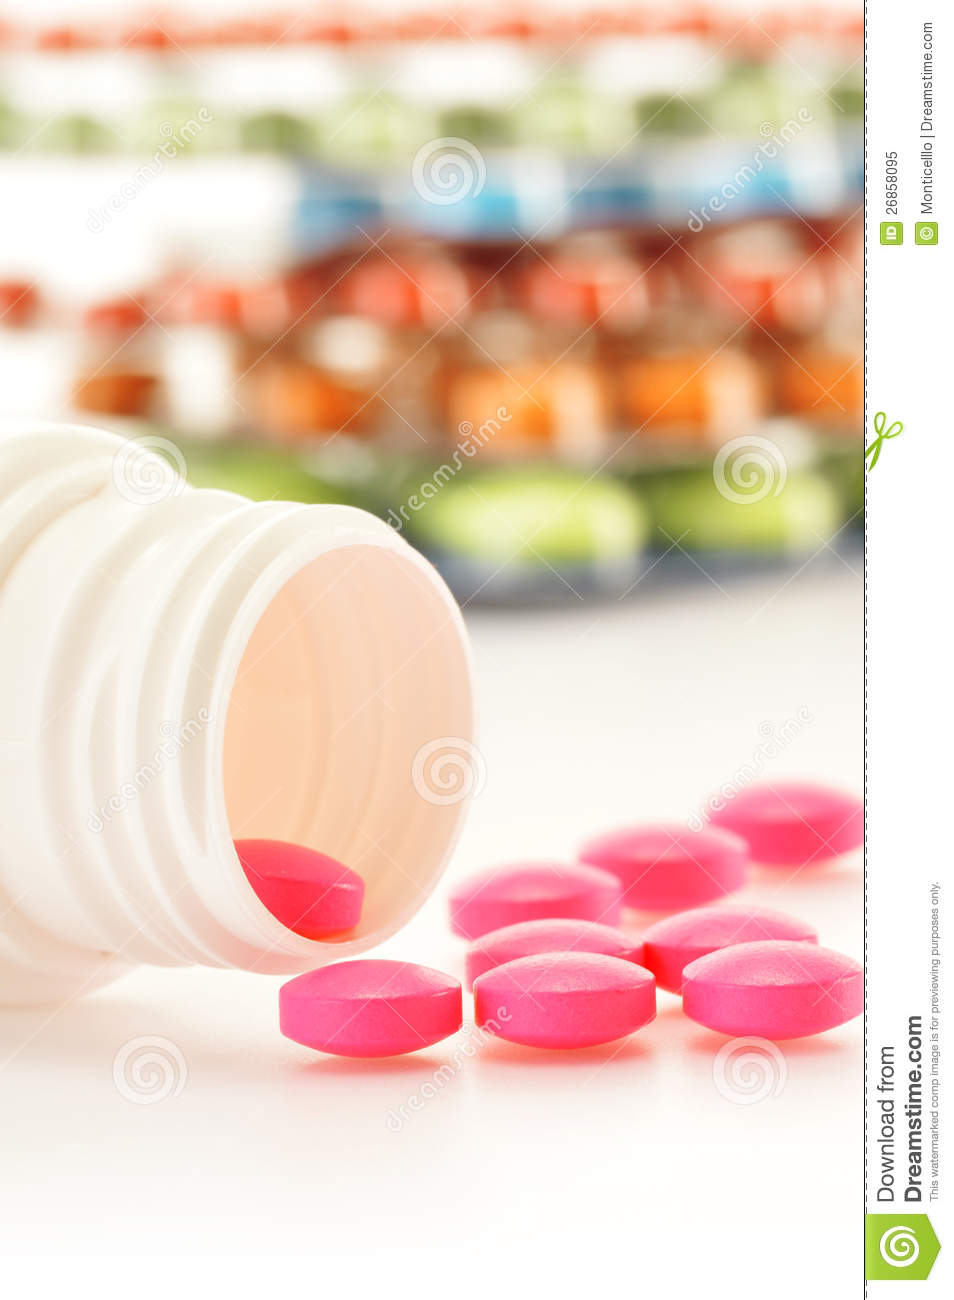 Variety of drug pills and dietary supplements